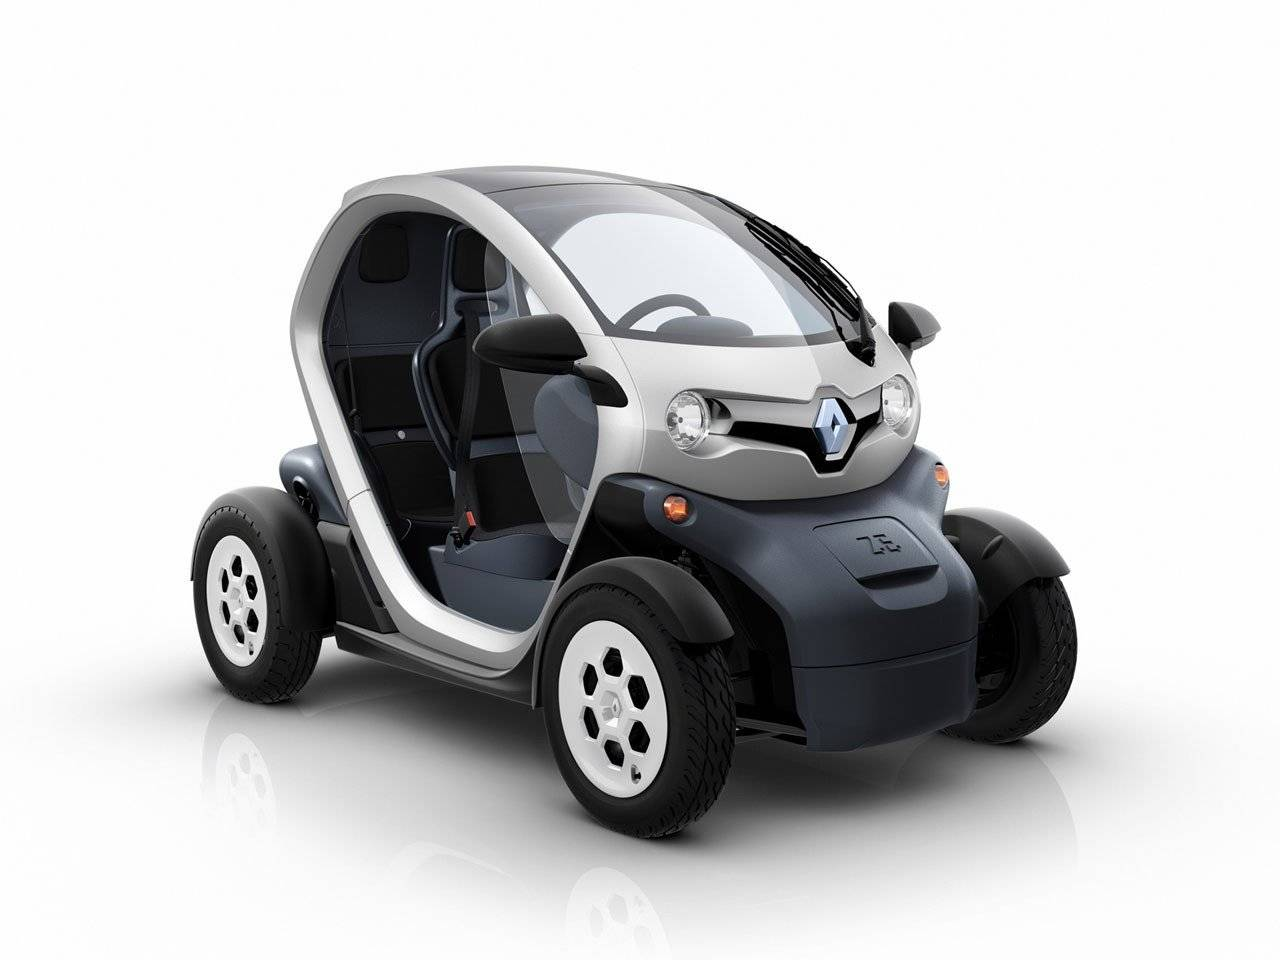 definitieve prijzen renault twizy bekend autonieuws. Black Bedroom Furniture Sets. Home Design Ideas